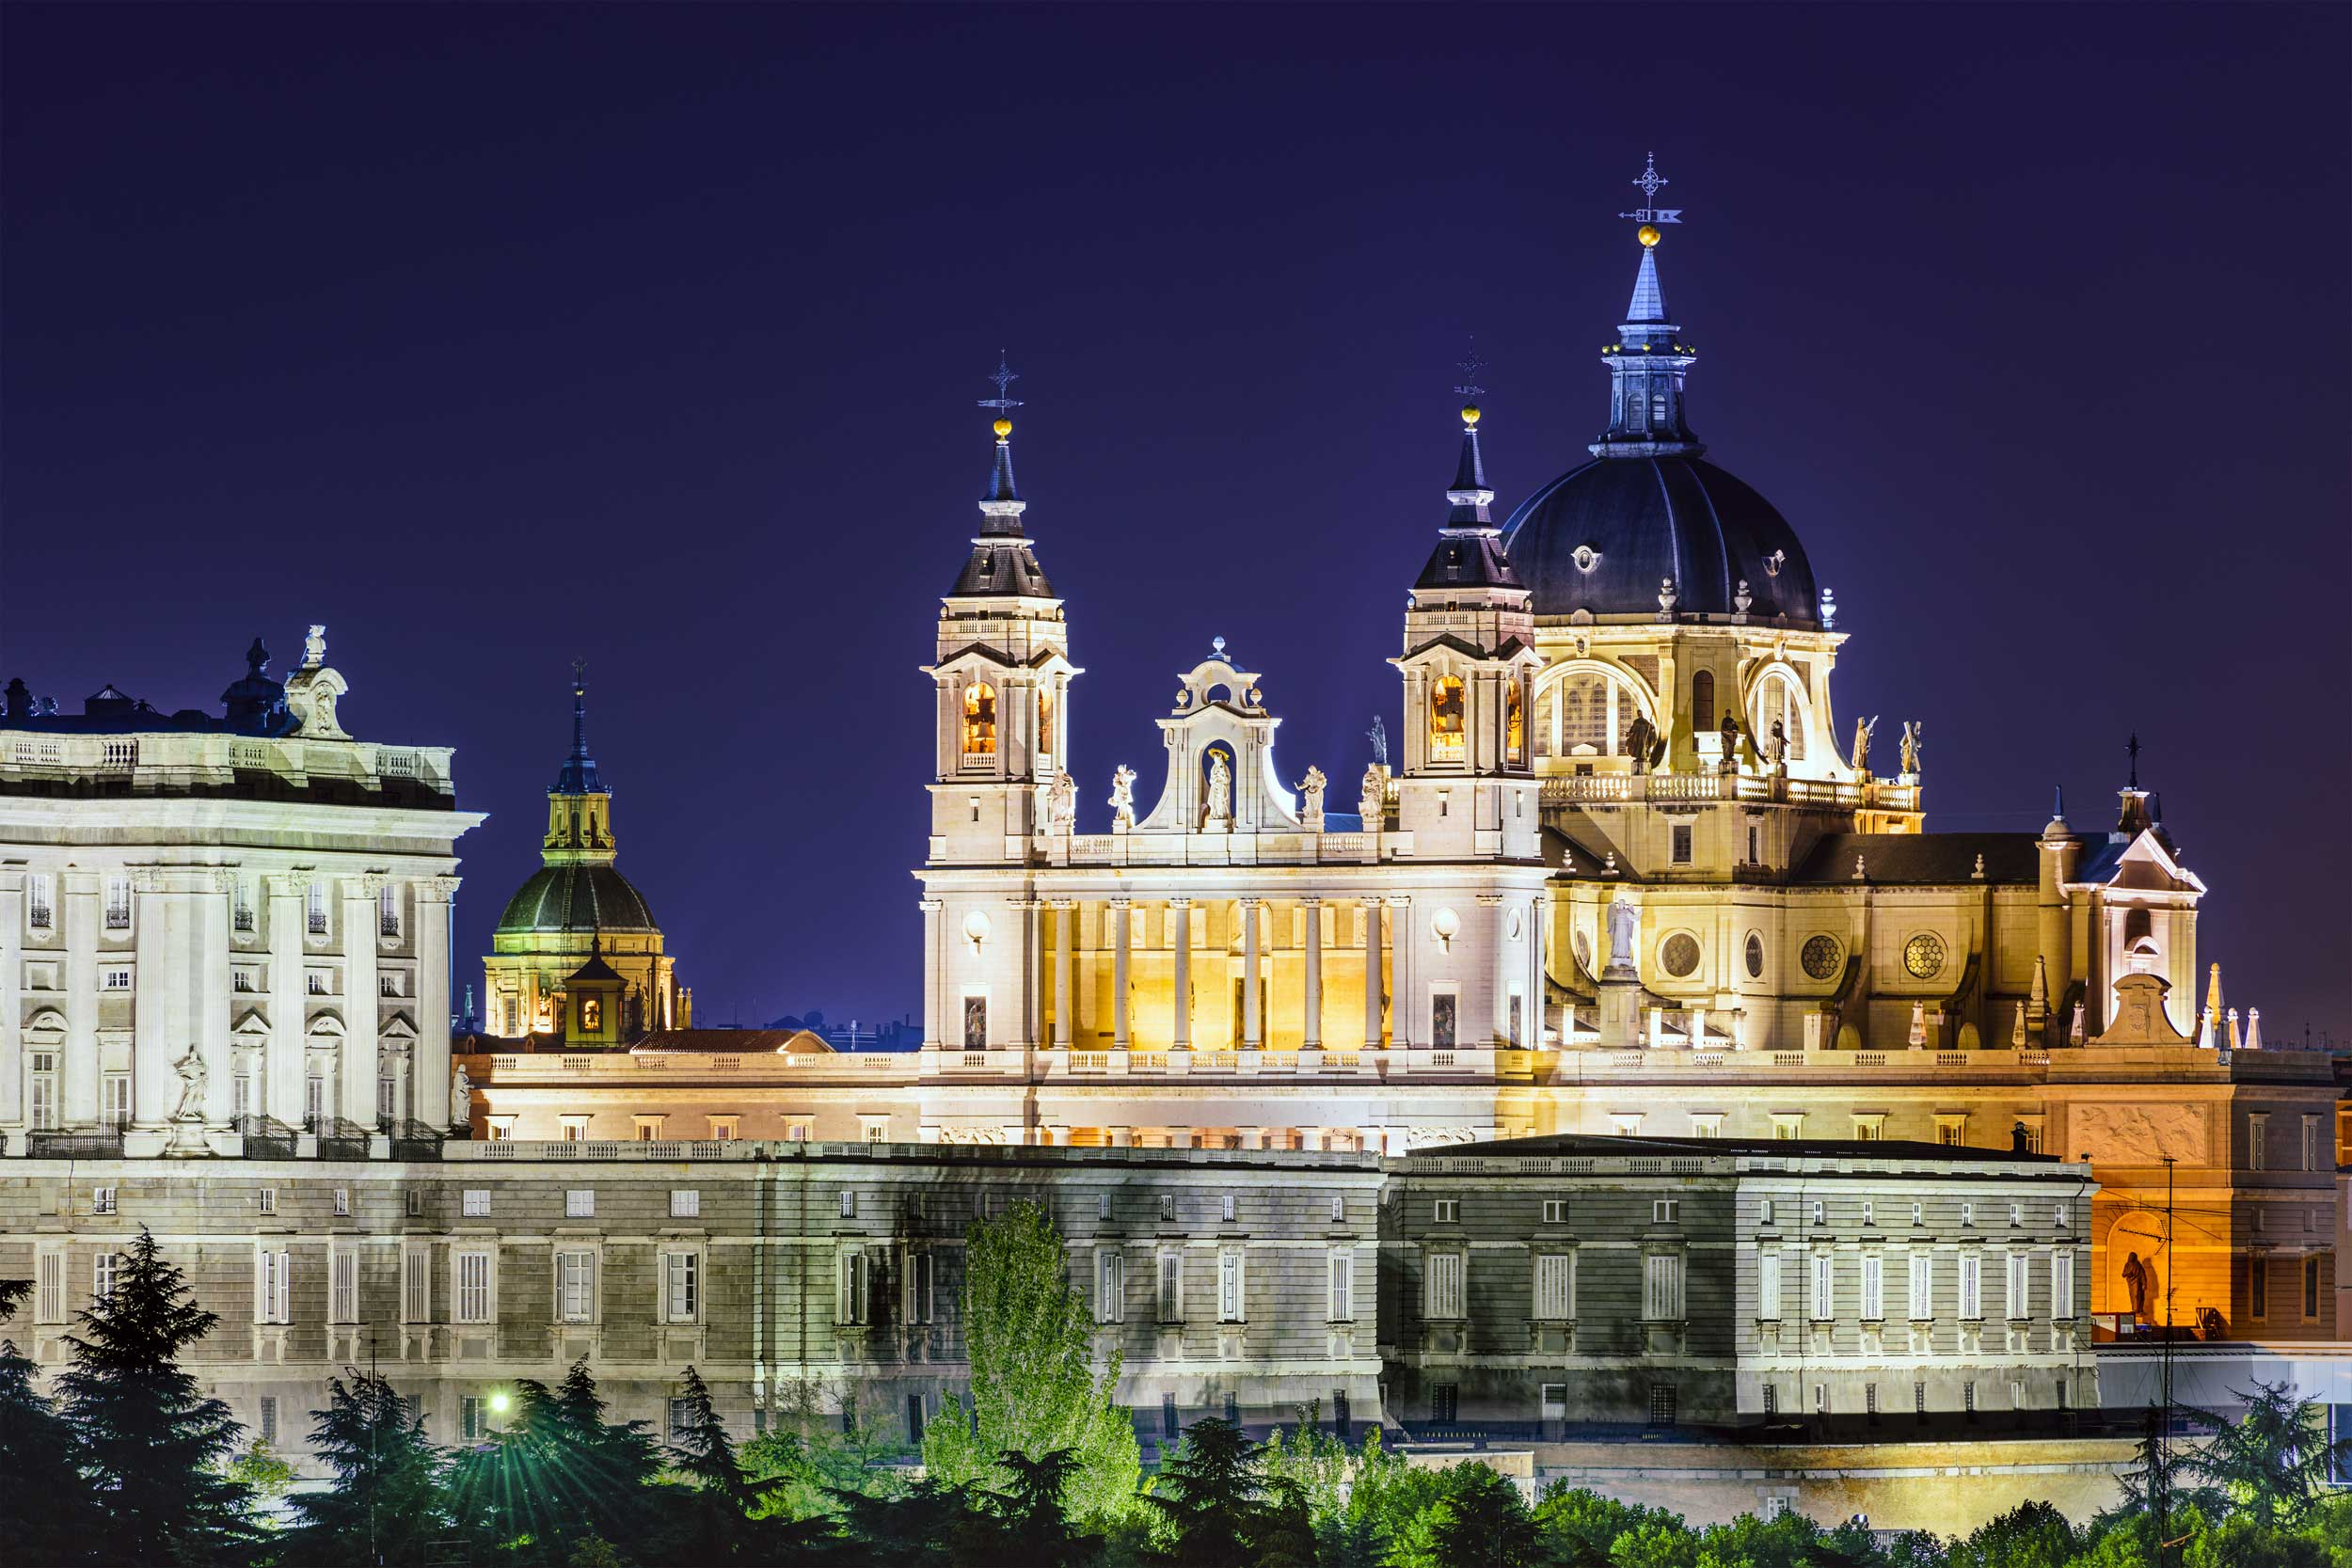 A lit-up blue-domed cathedral with in Madrid